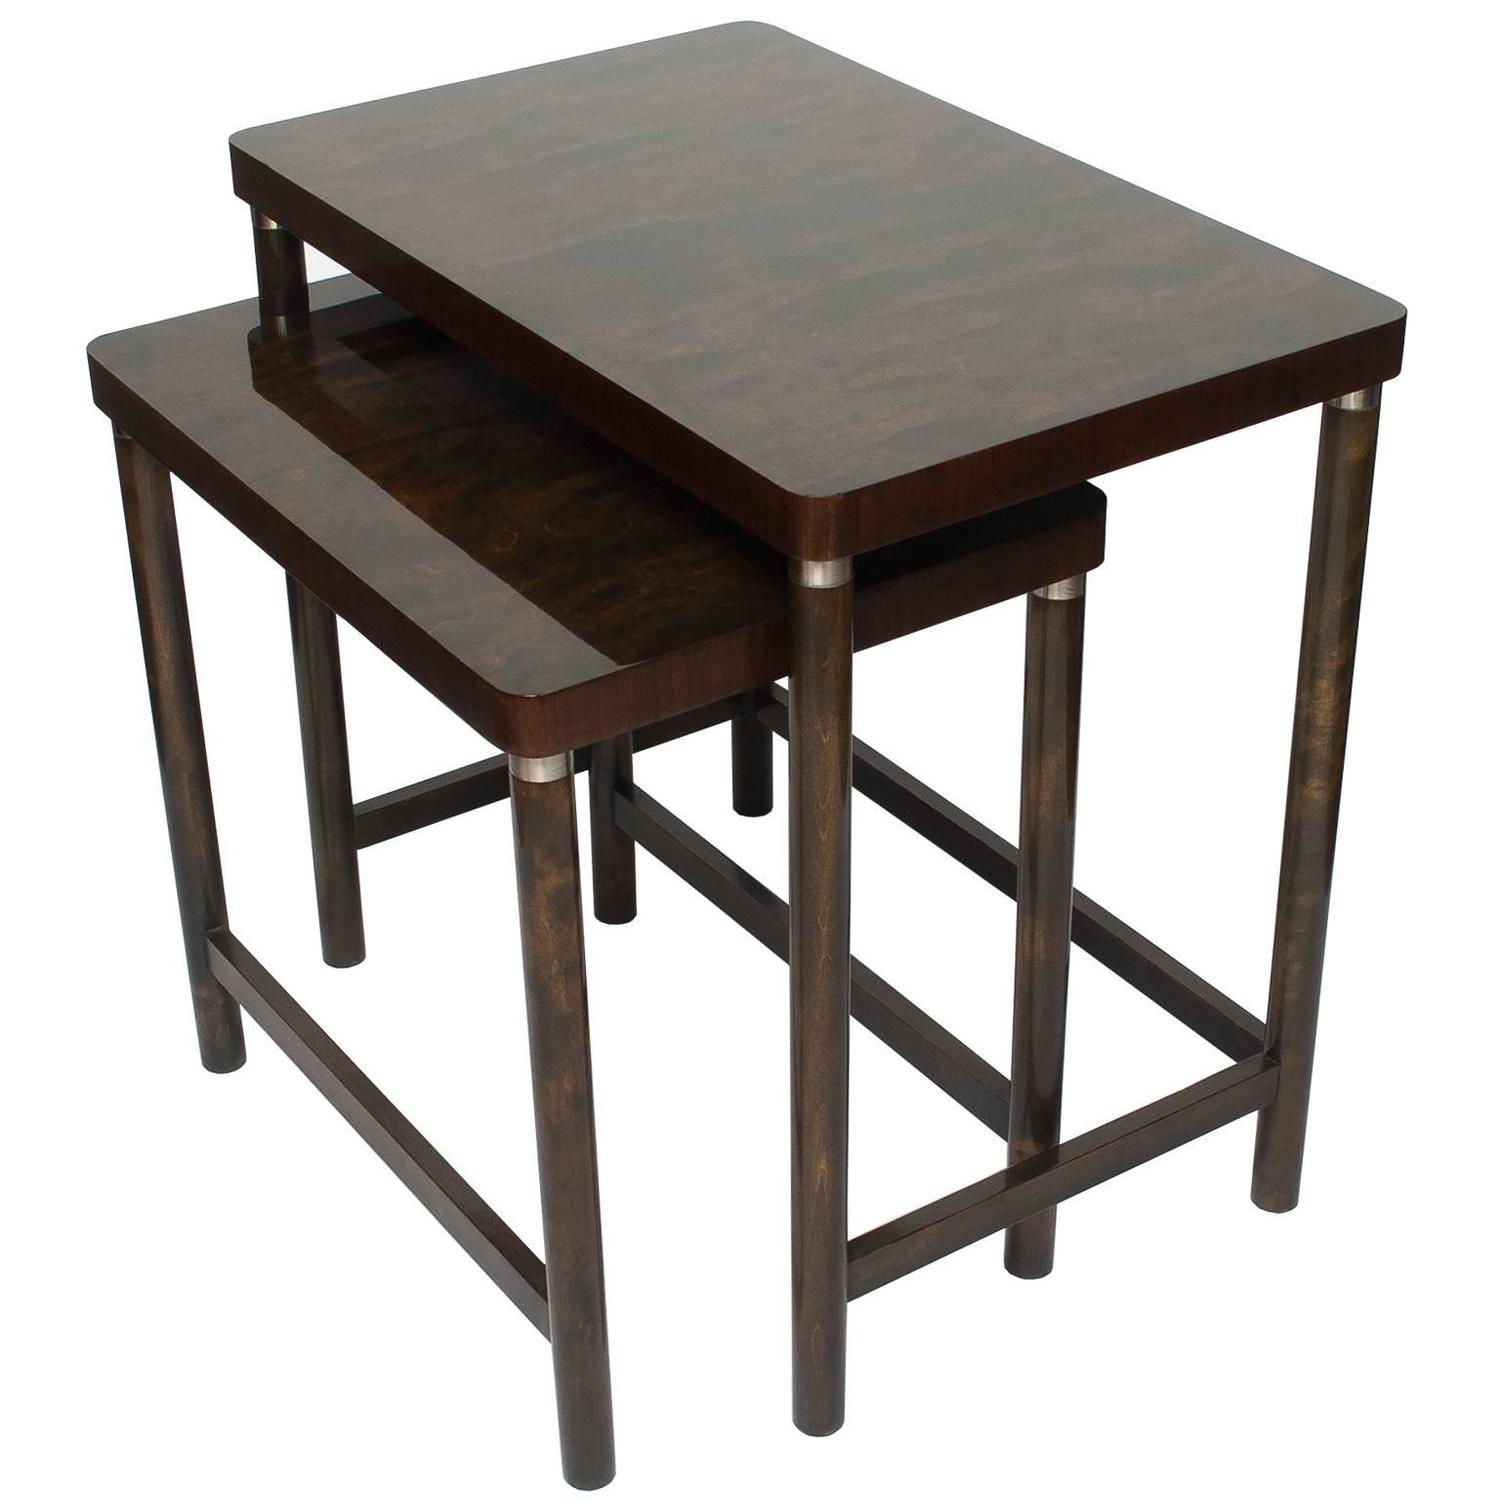 Scandinavian modern set of two nesting tables in stained